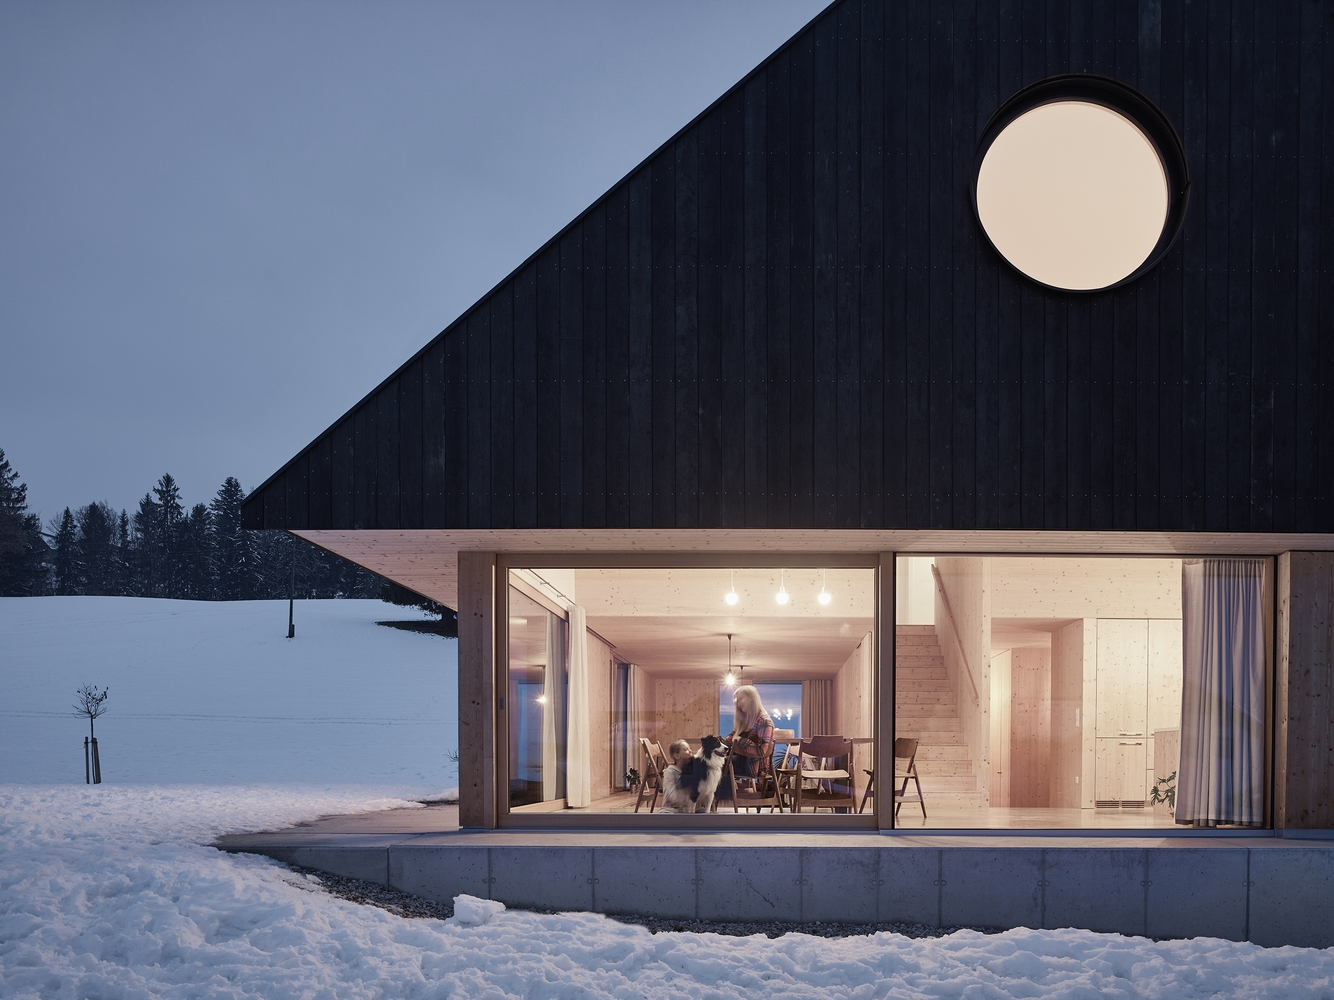 House Gable mia2/Architektur Re - thetreemag | ello